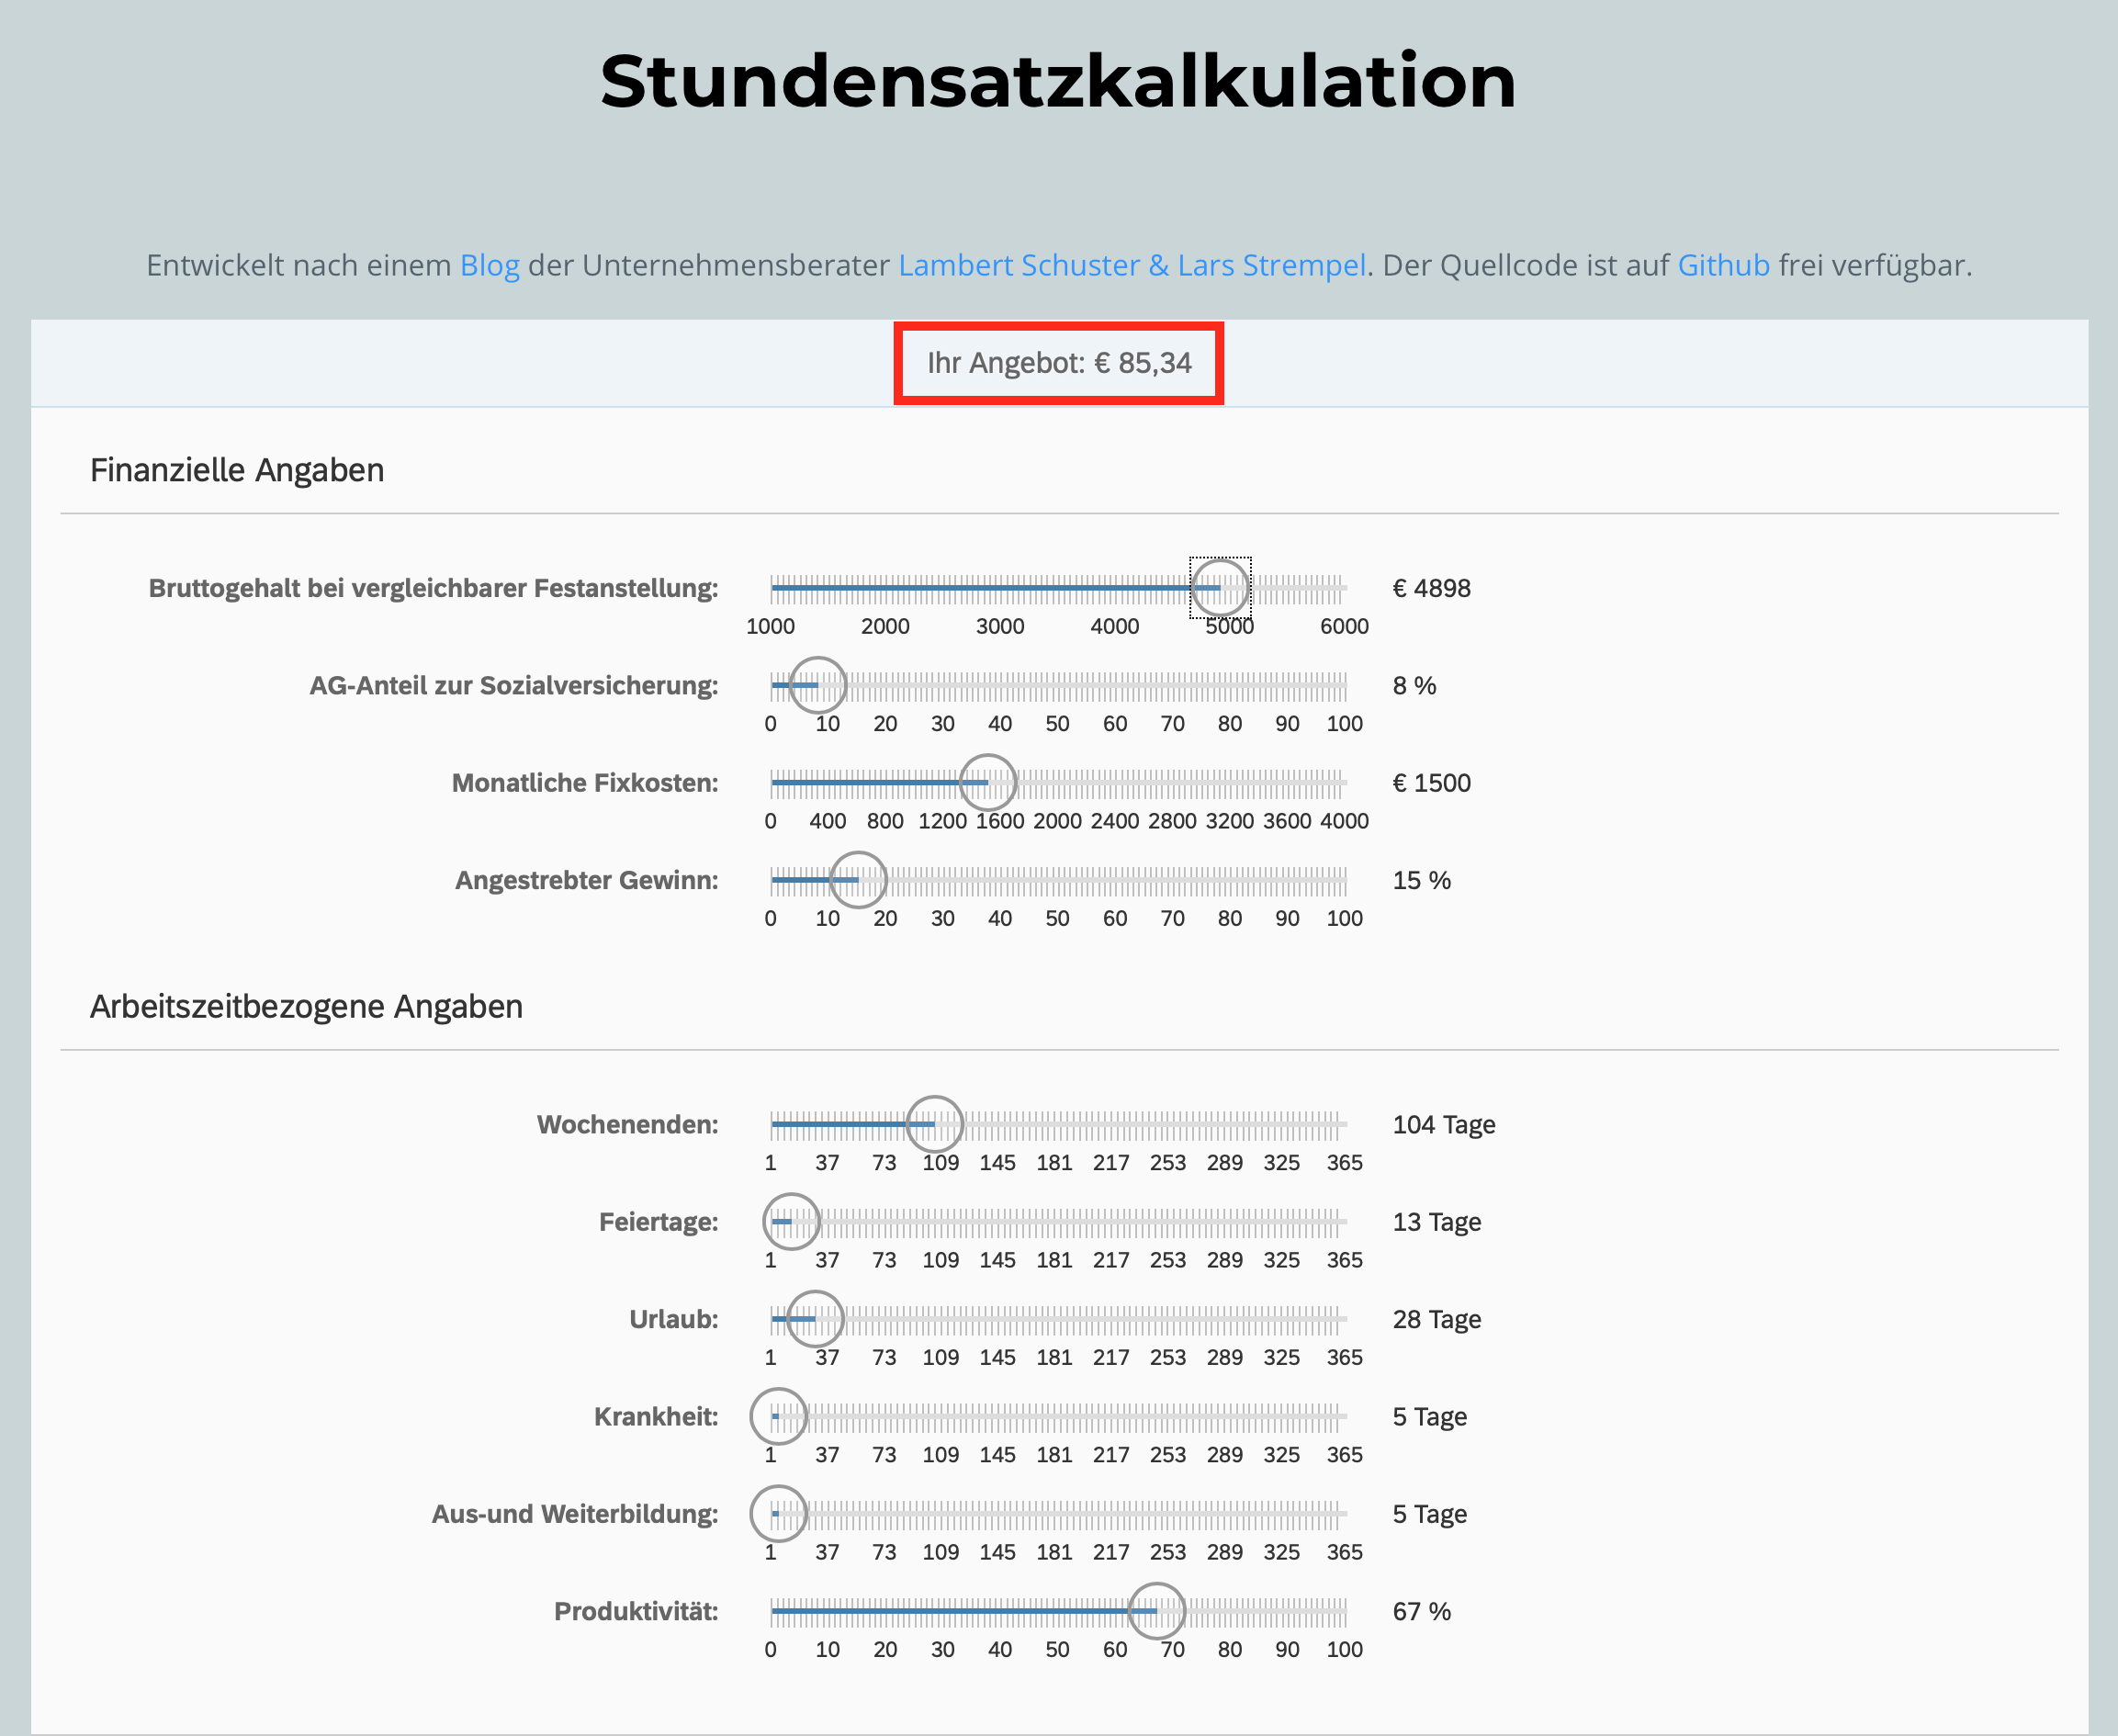 Stundensatzkalkulation IT Freelancer